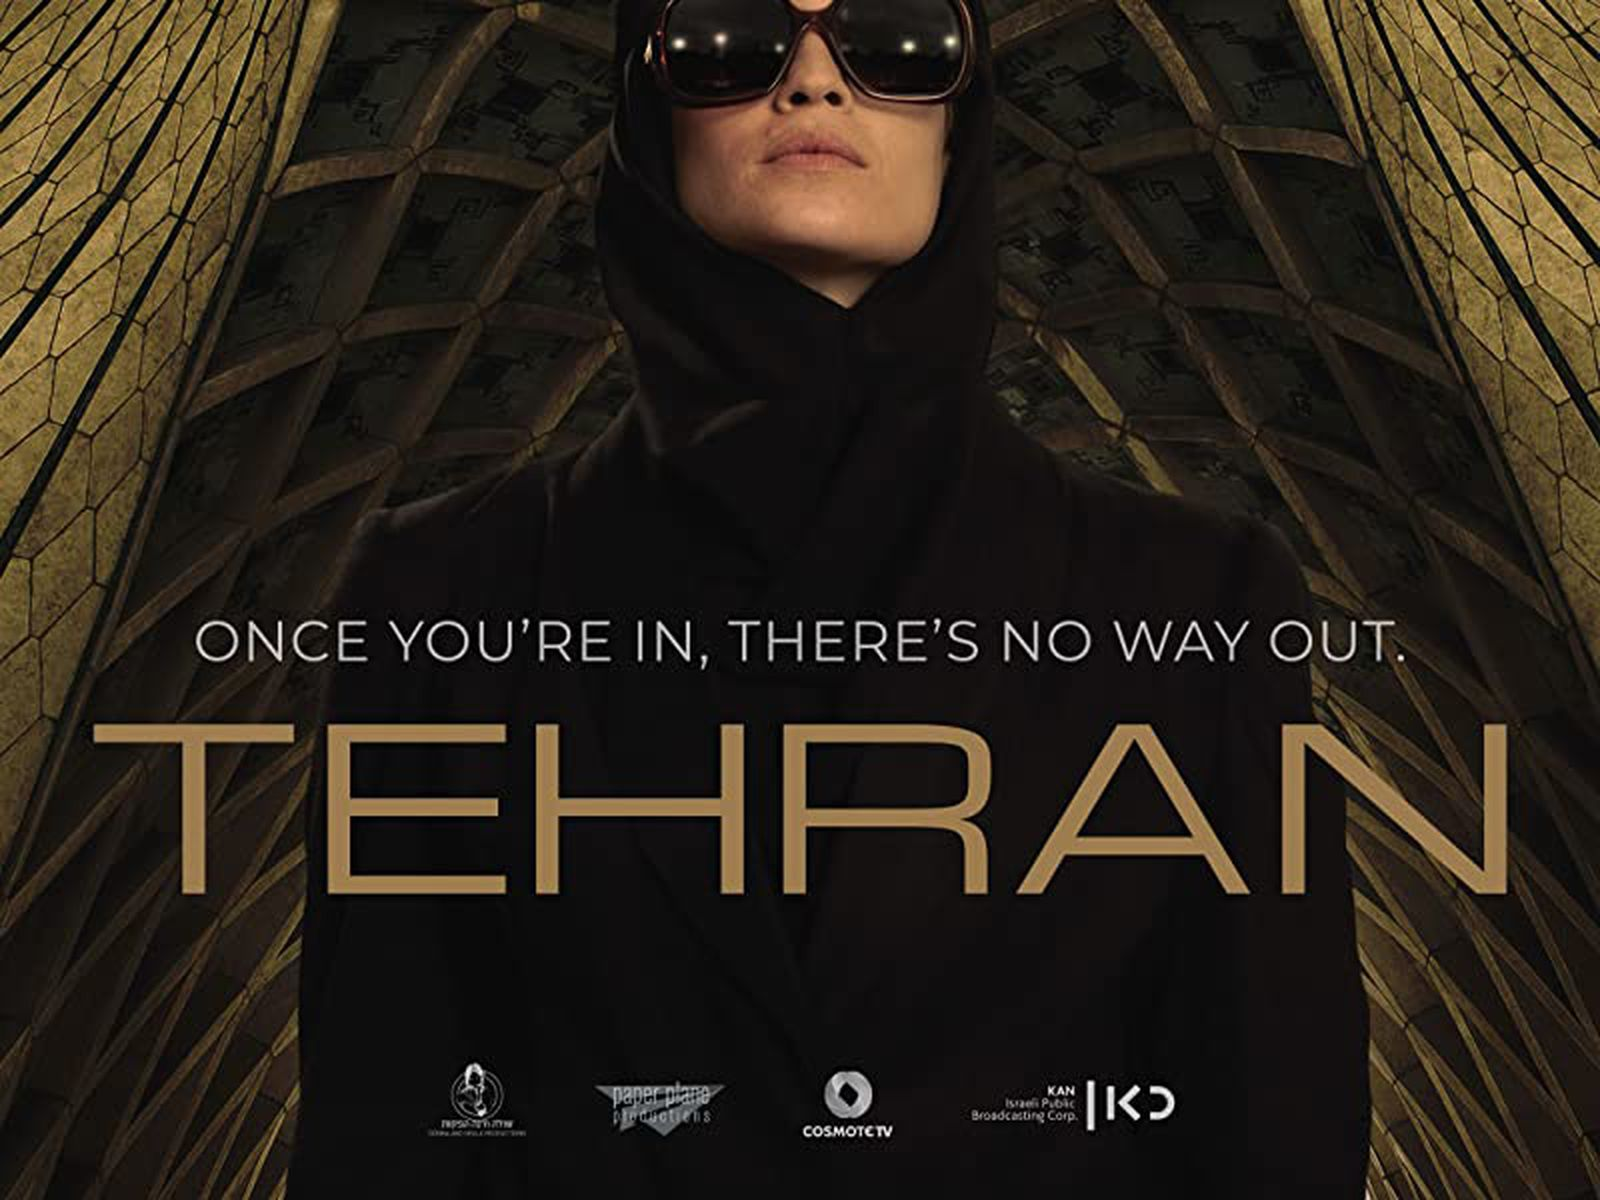 Apple TV+ Secures Rights to Israel-Iran Espionage Thriller 'Tehran' -  MacRumors